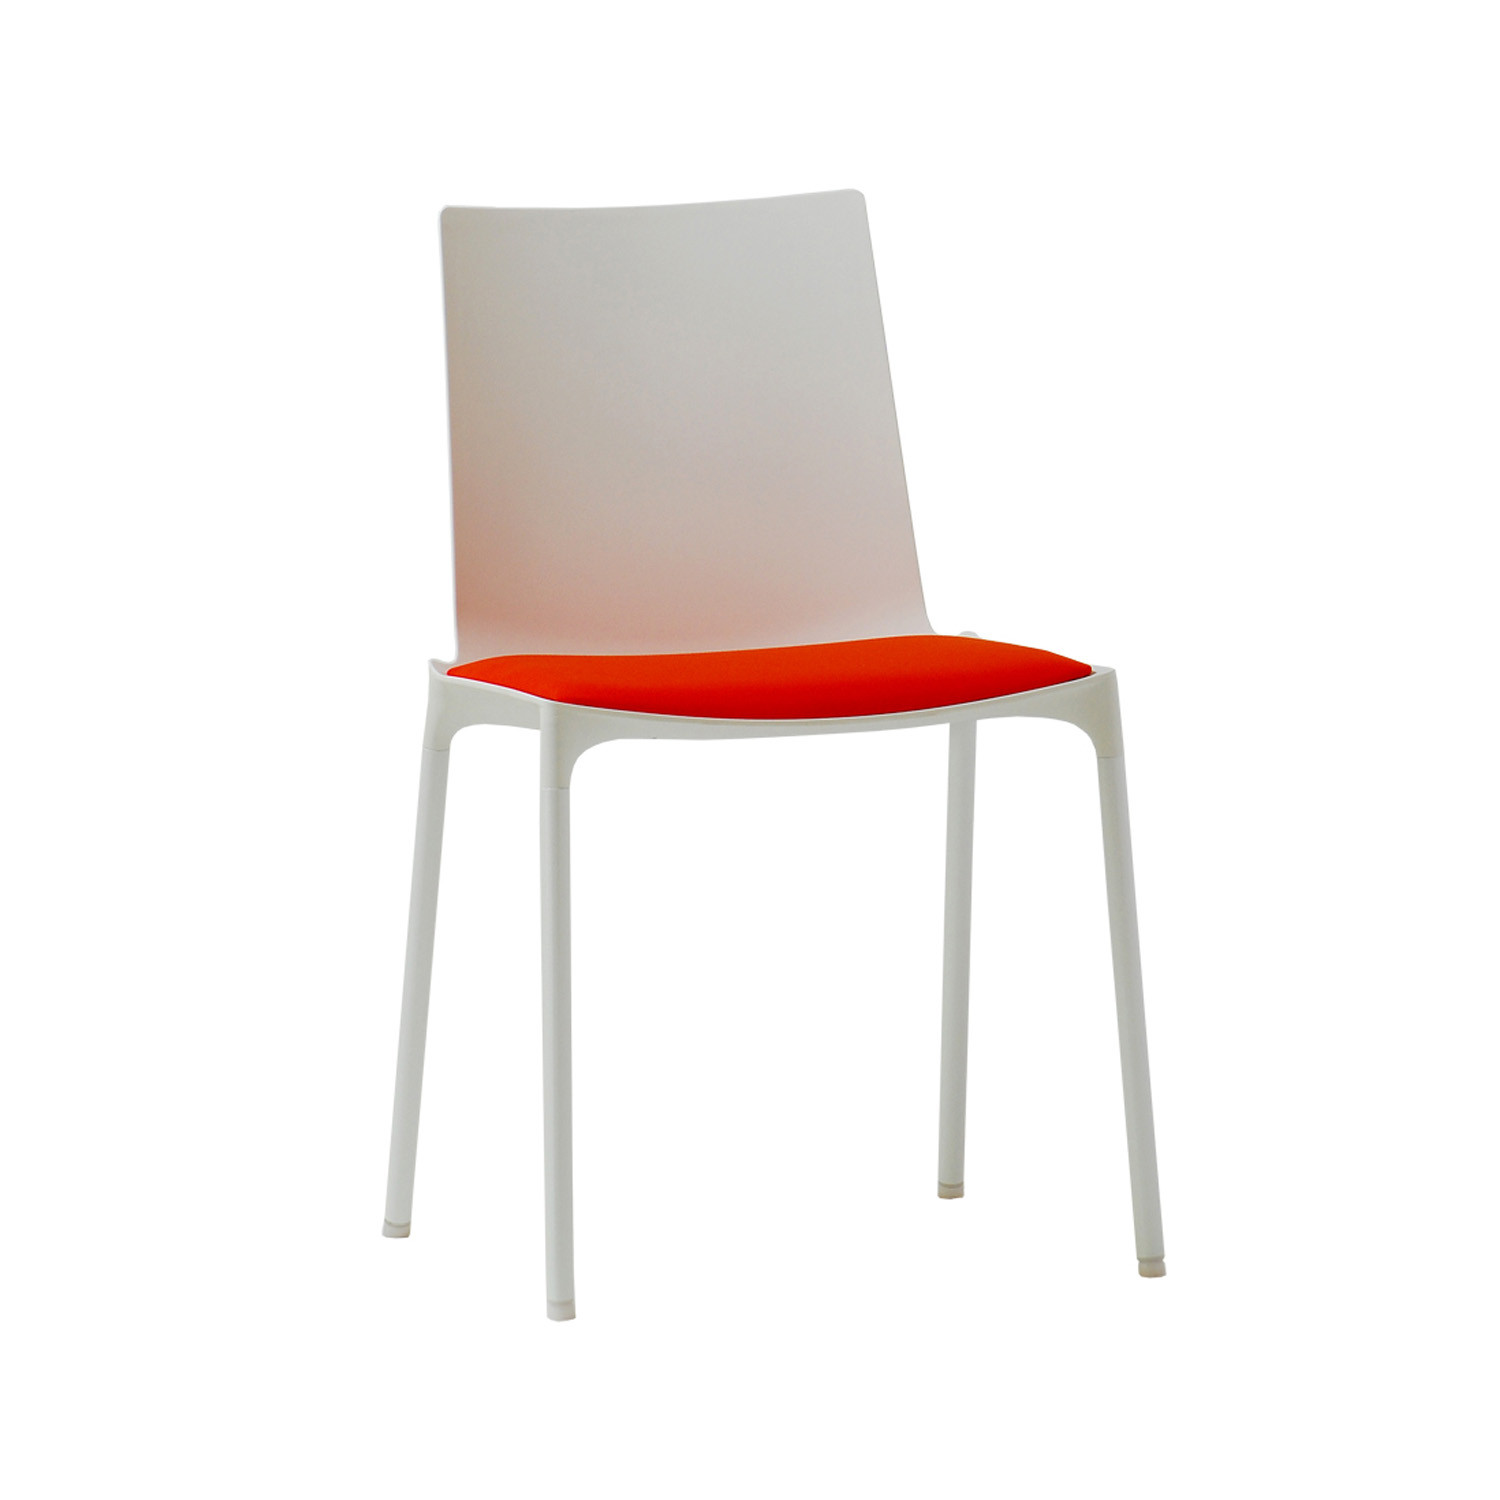 Macao Seating by Neunzig° Design